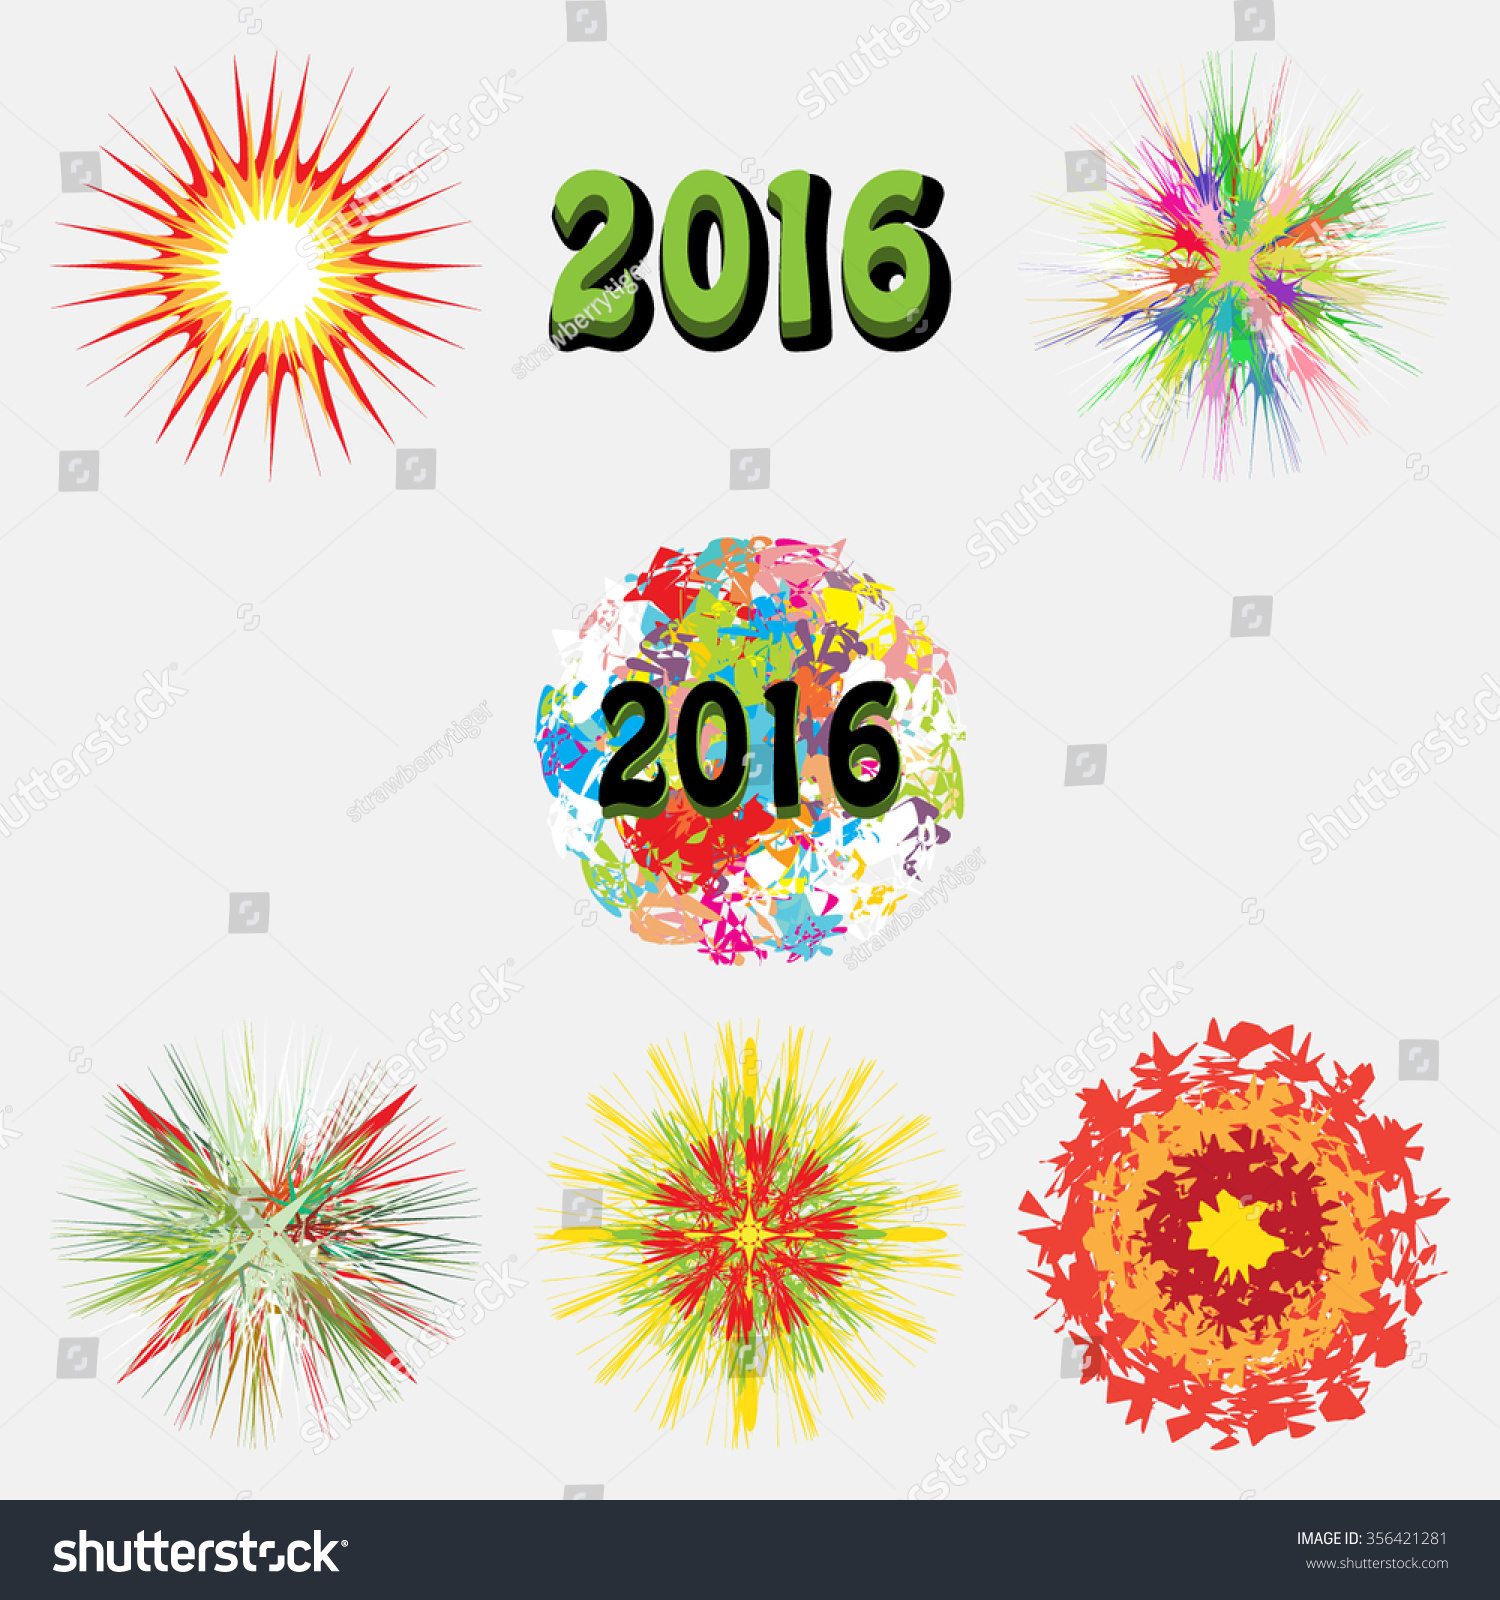 new year collection of themed colored starbursts fireworks explosion isolated vector symbols